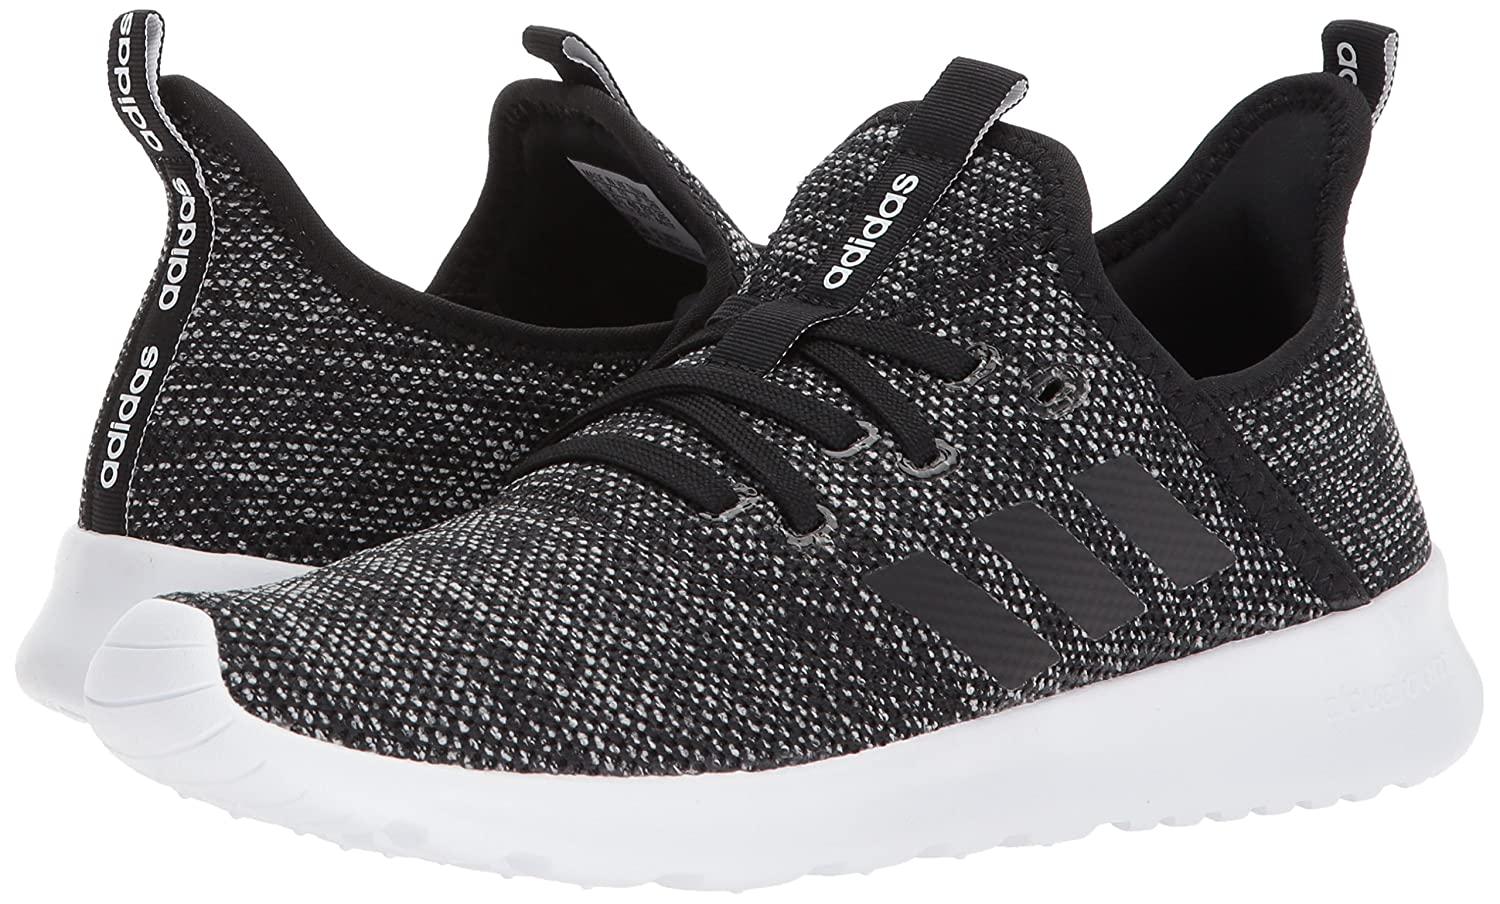 adidas Women's Cloudfoam Pure Running Shoe B072LN1L1X 8 B(M) US|Black/Black/White